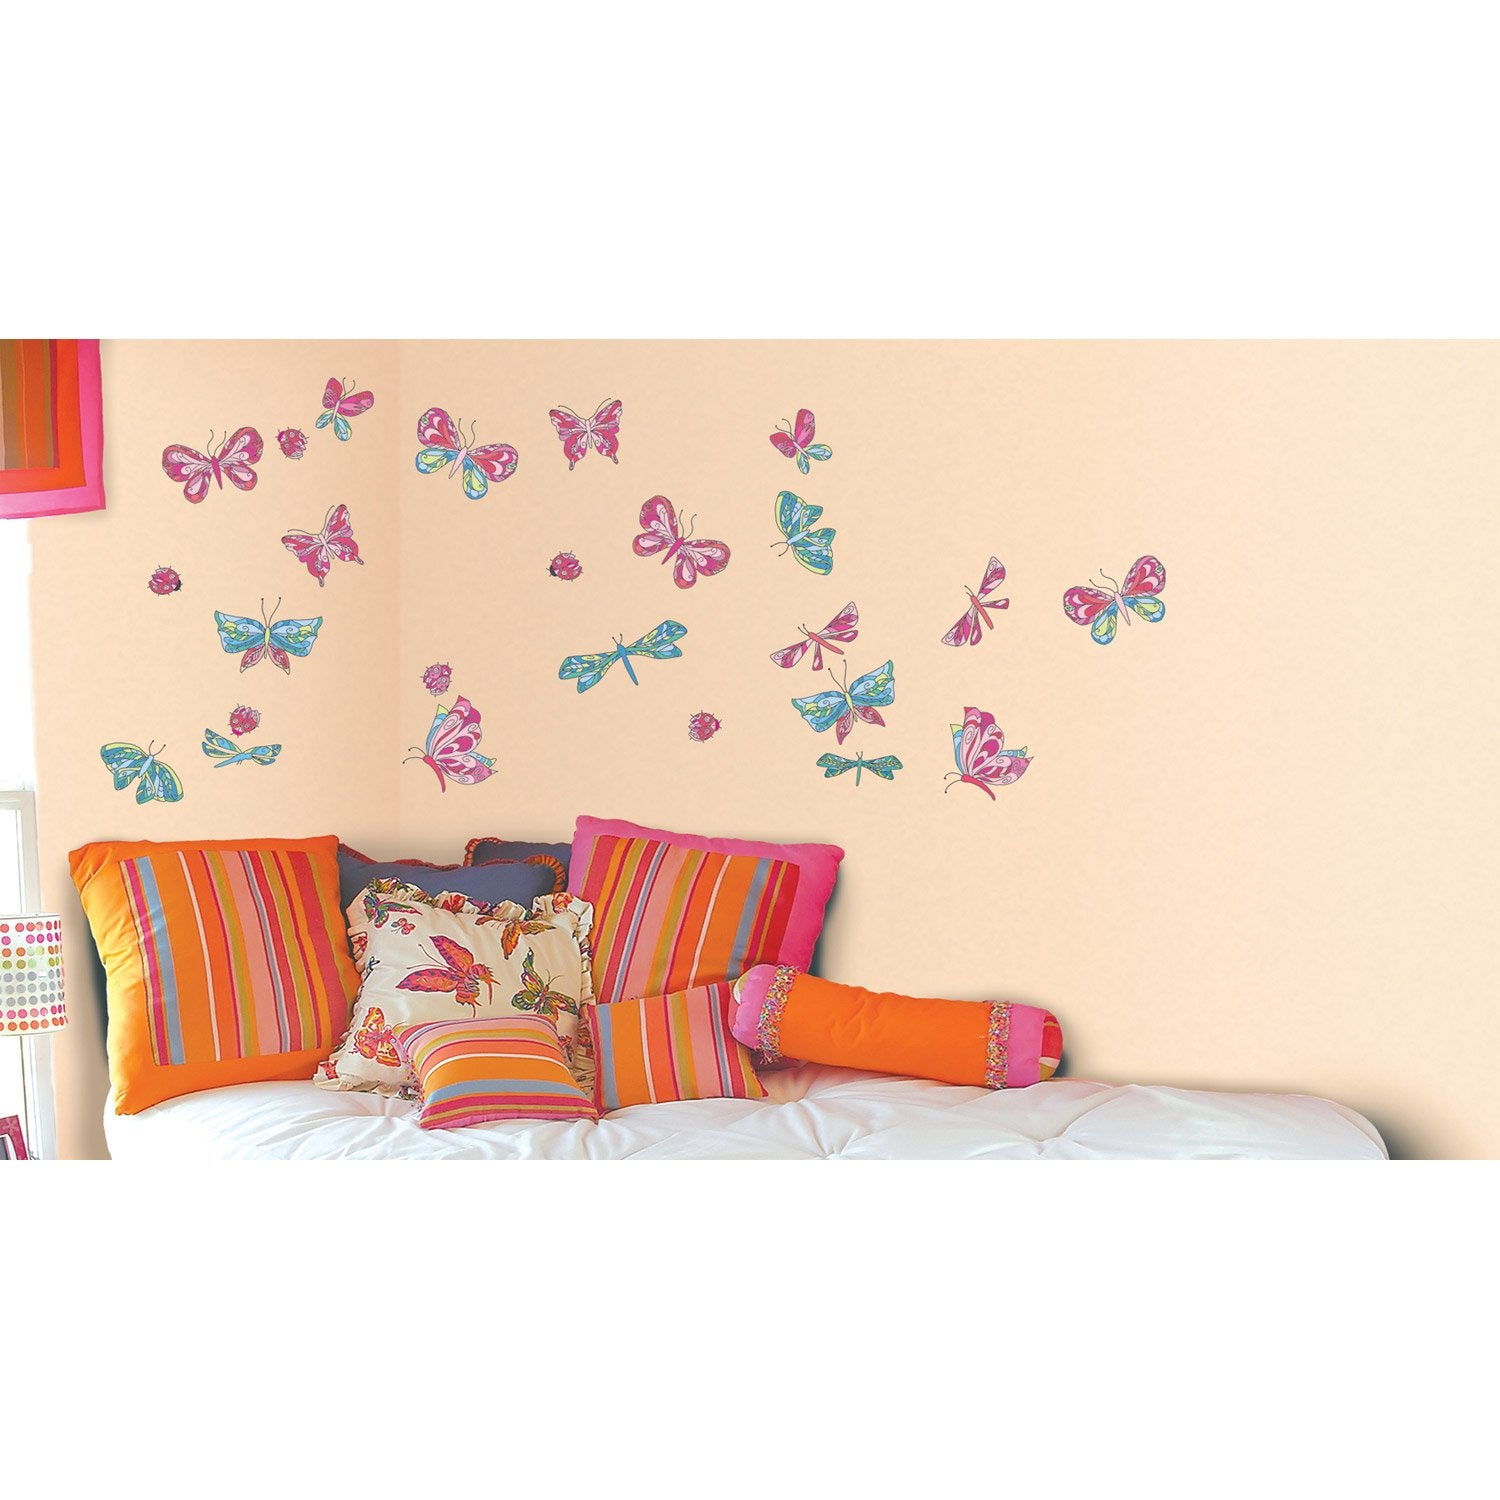 sticker papillons magiques 50 cm x 70 cm leroy merlin. Black Bedroom Furniture Sets. Home Design Ideas